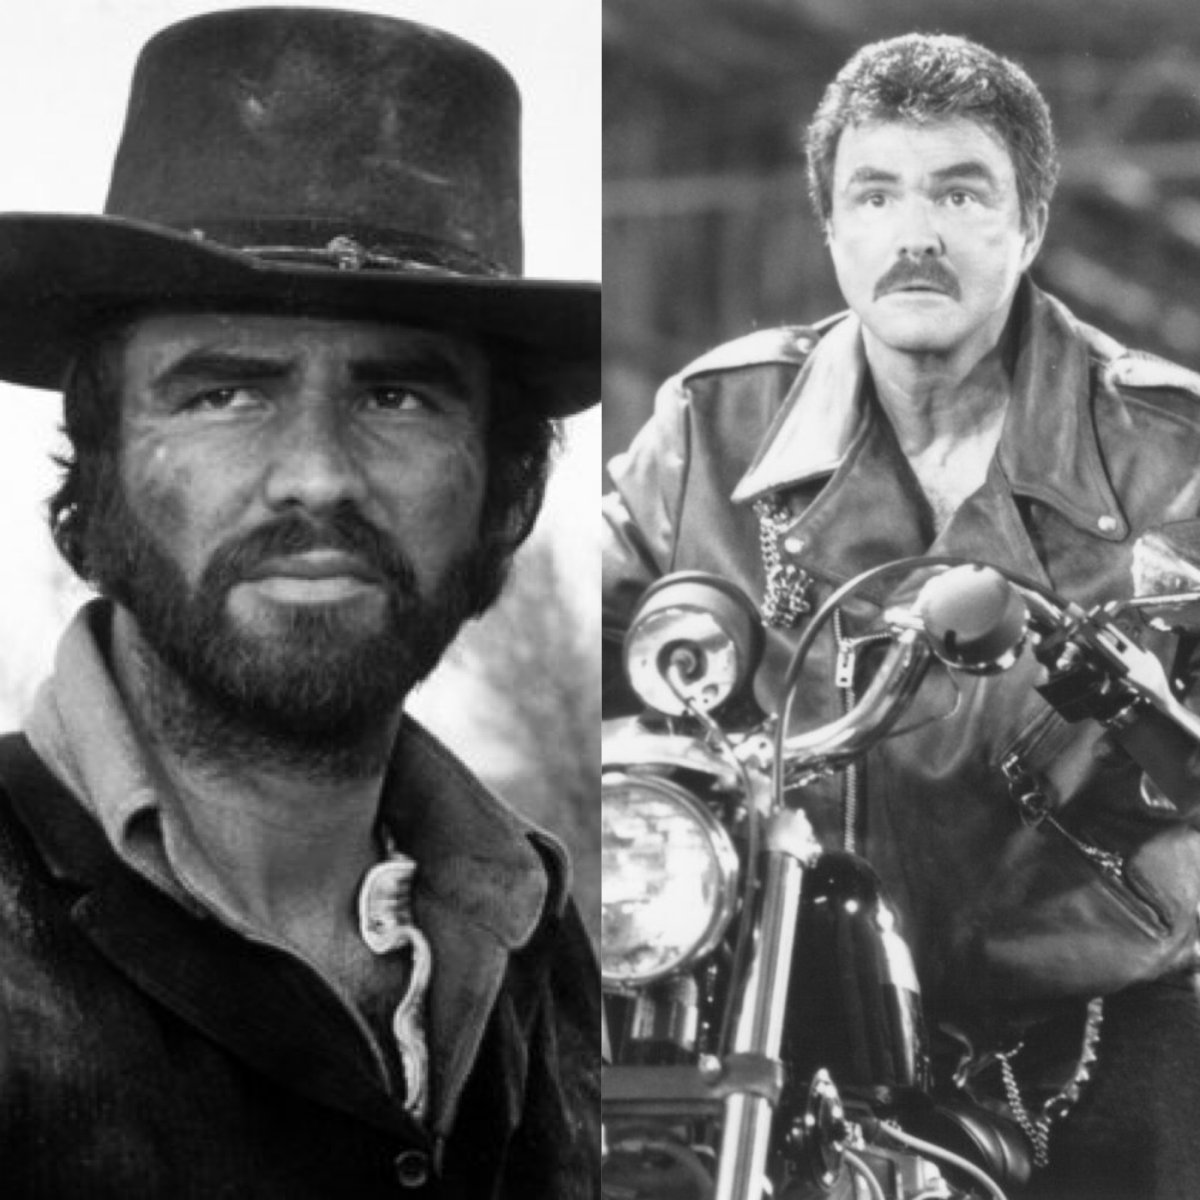 Happy 80th Birthday Burt Reynolds! From TV westerns to rugged action figures, you are a true